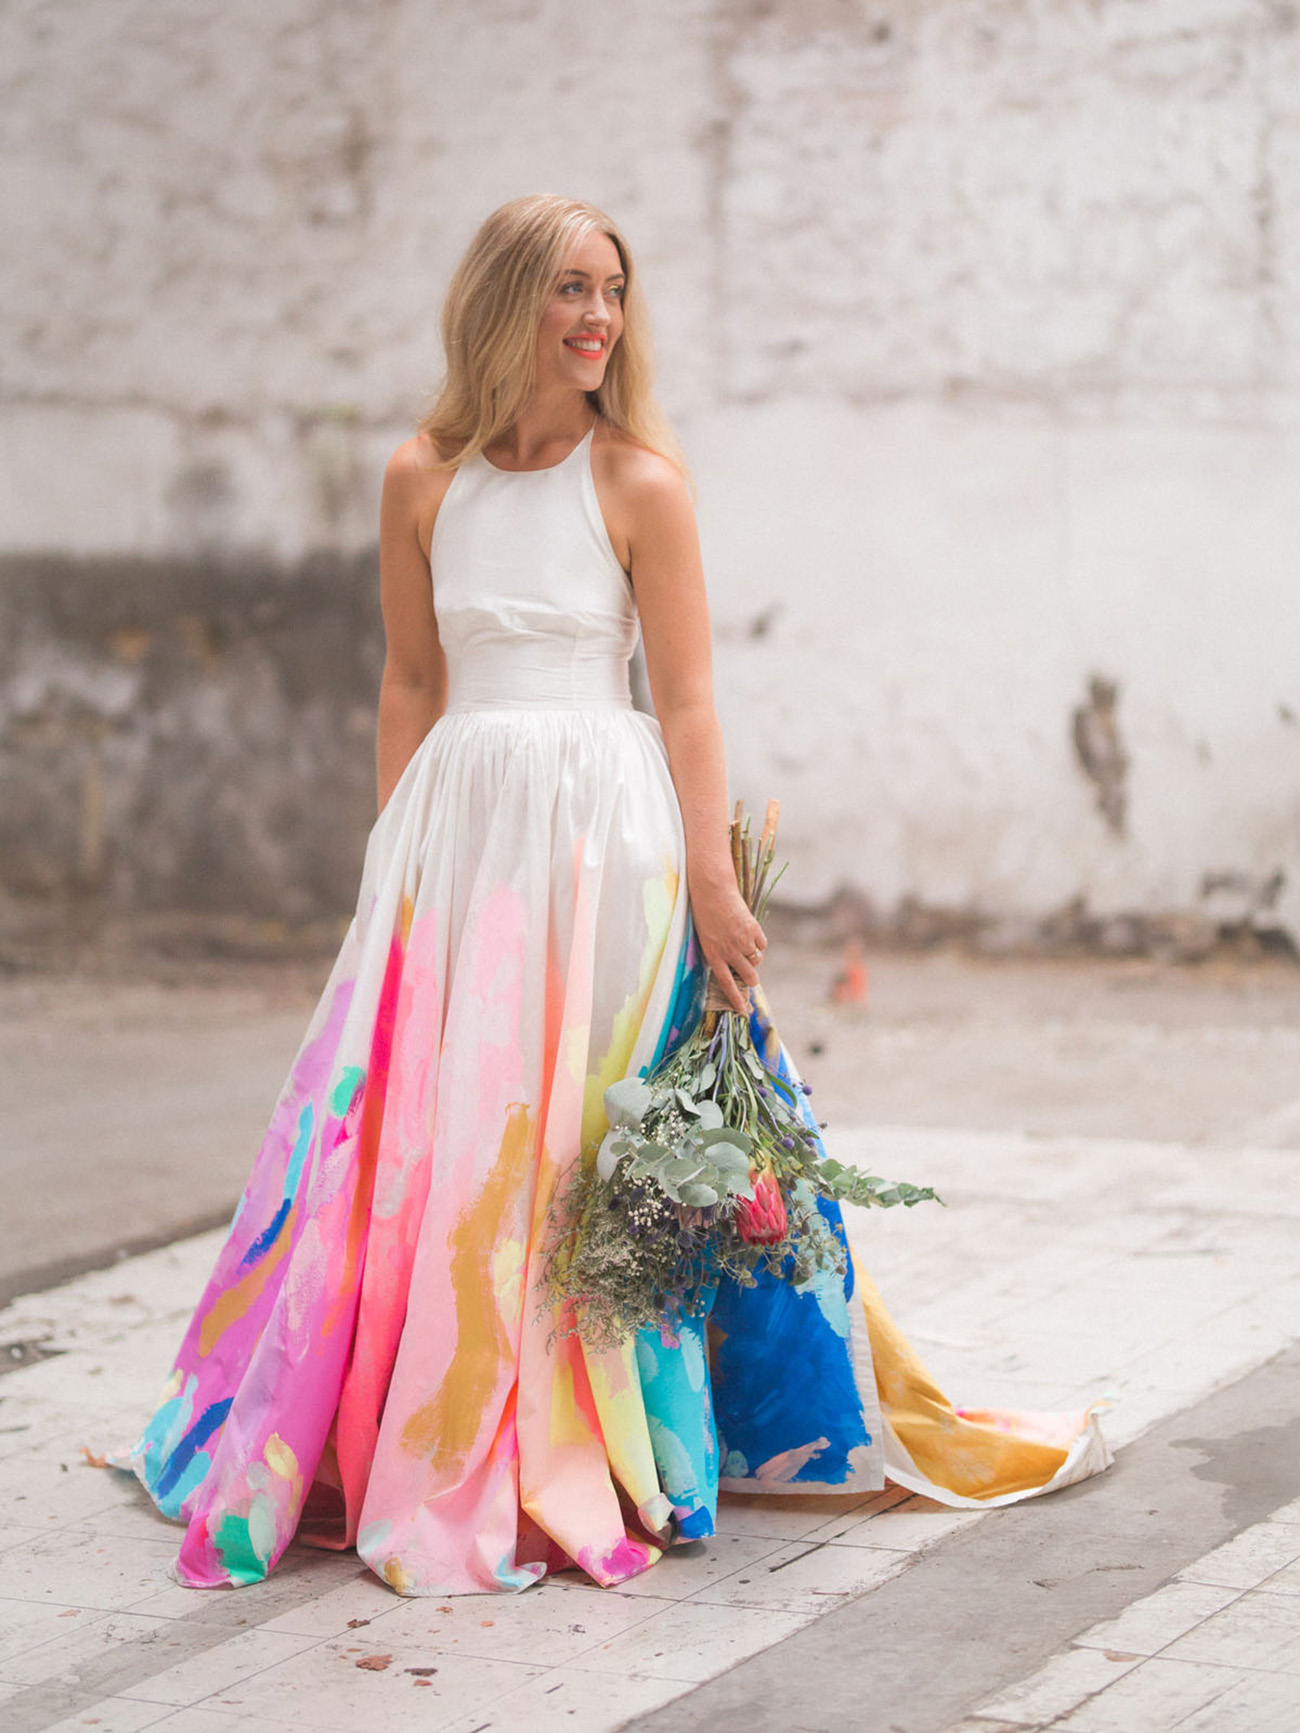 Dress Designed By Tiff Manuell Handmade Patricio Banados Valenzuela From This The Bride Wore A Hand Painted Rainbow Wedding Photo Alex Kwong